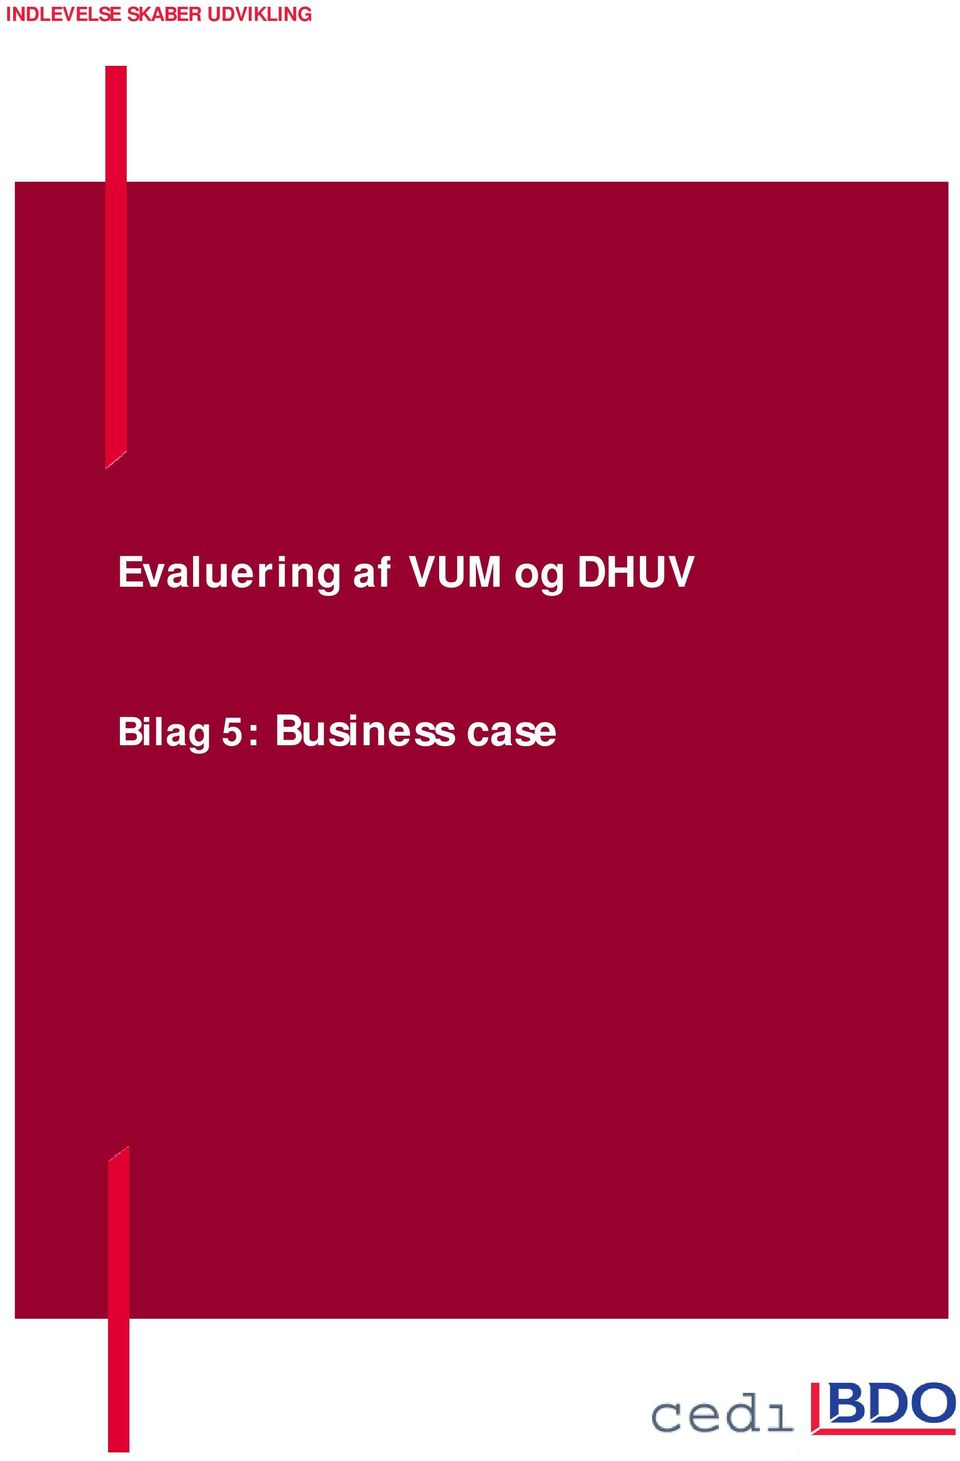 Work-in-progress: VUM og DHUV